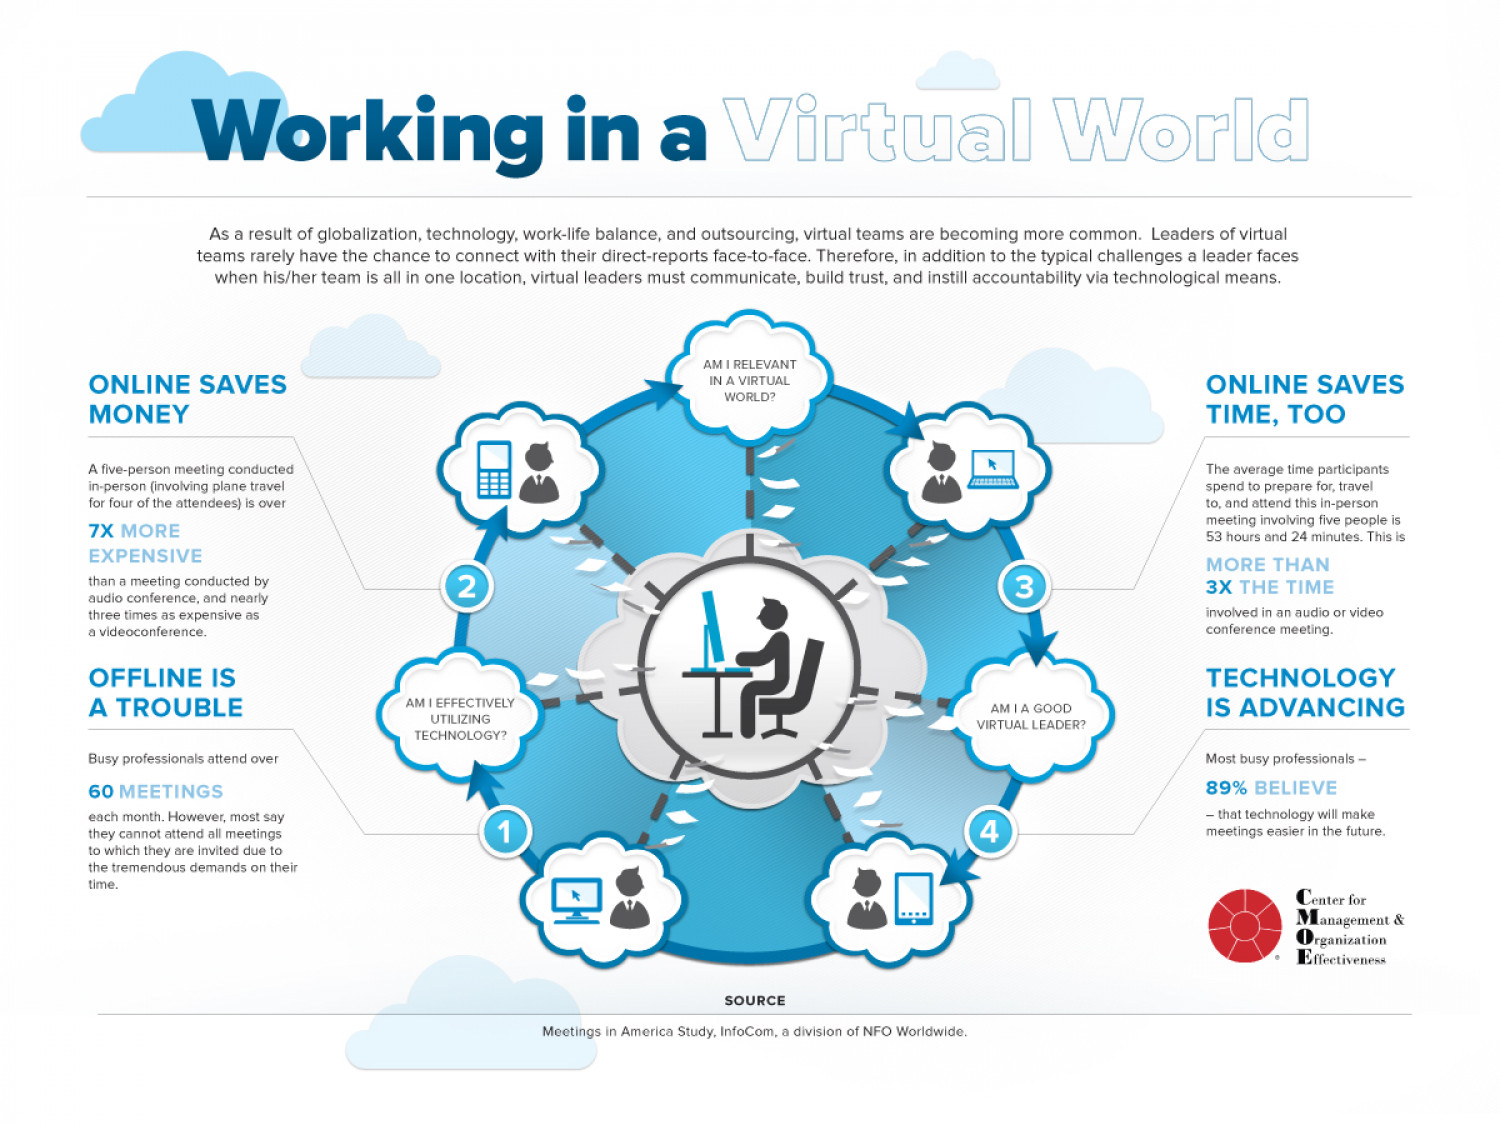 Working in a Virtual World Infographic